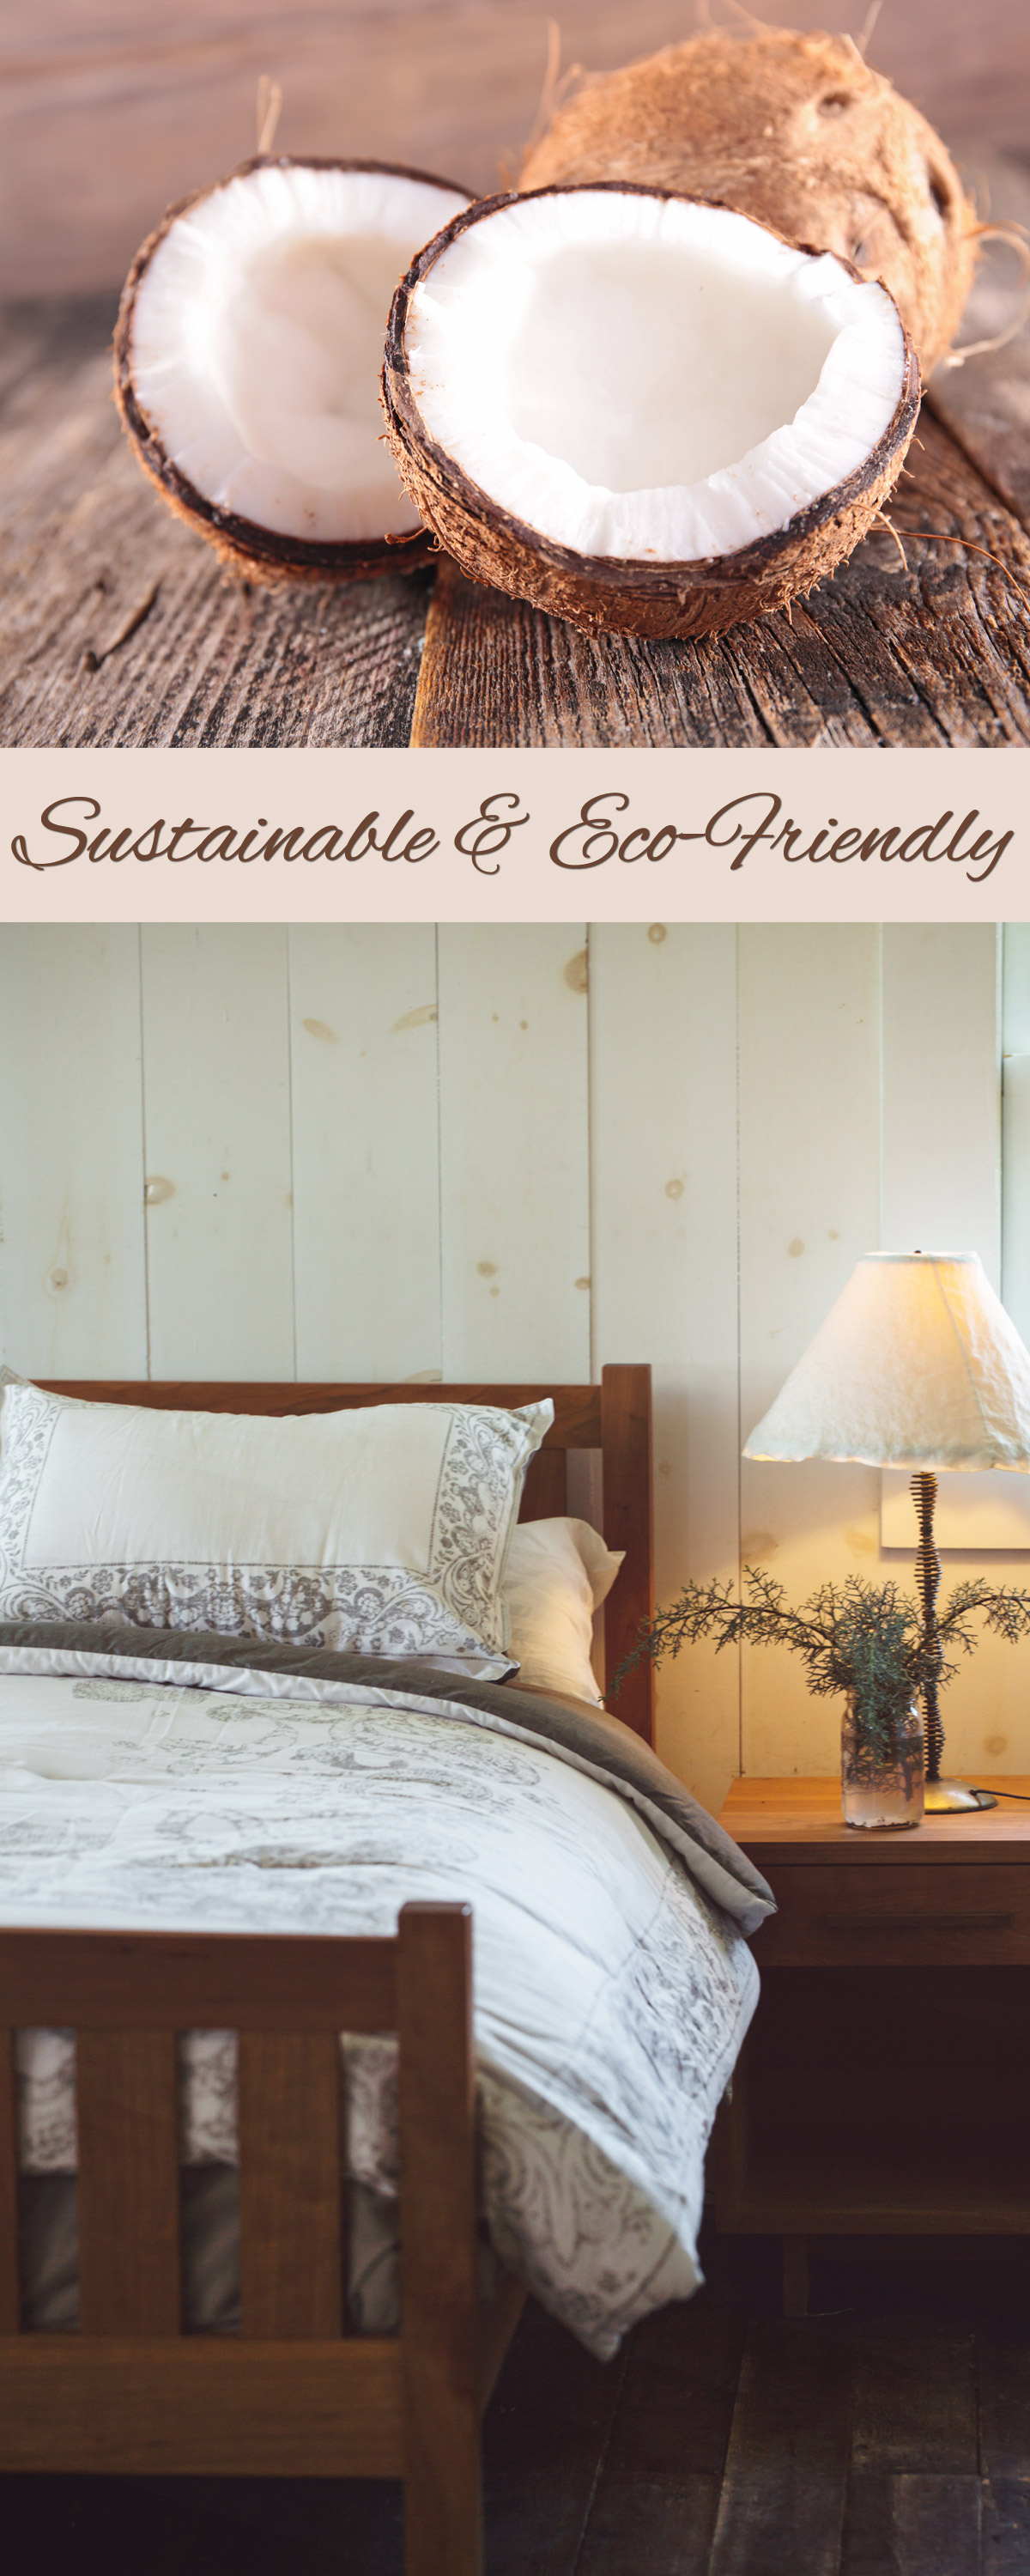 Coconut Fiber Mattress made exclusively by The Futon Shop - Premier Toxic Free Mattress